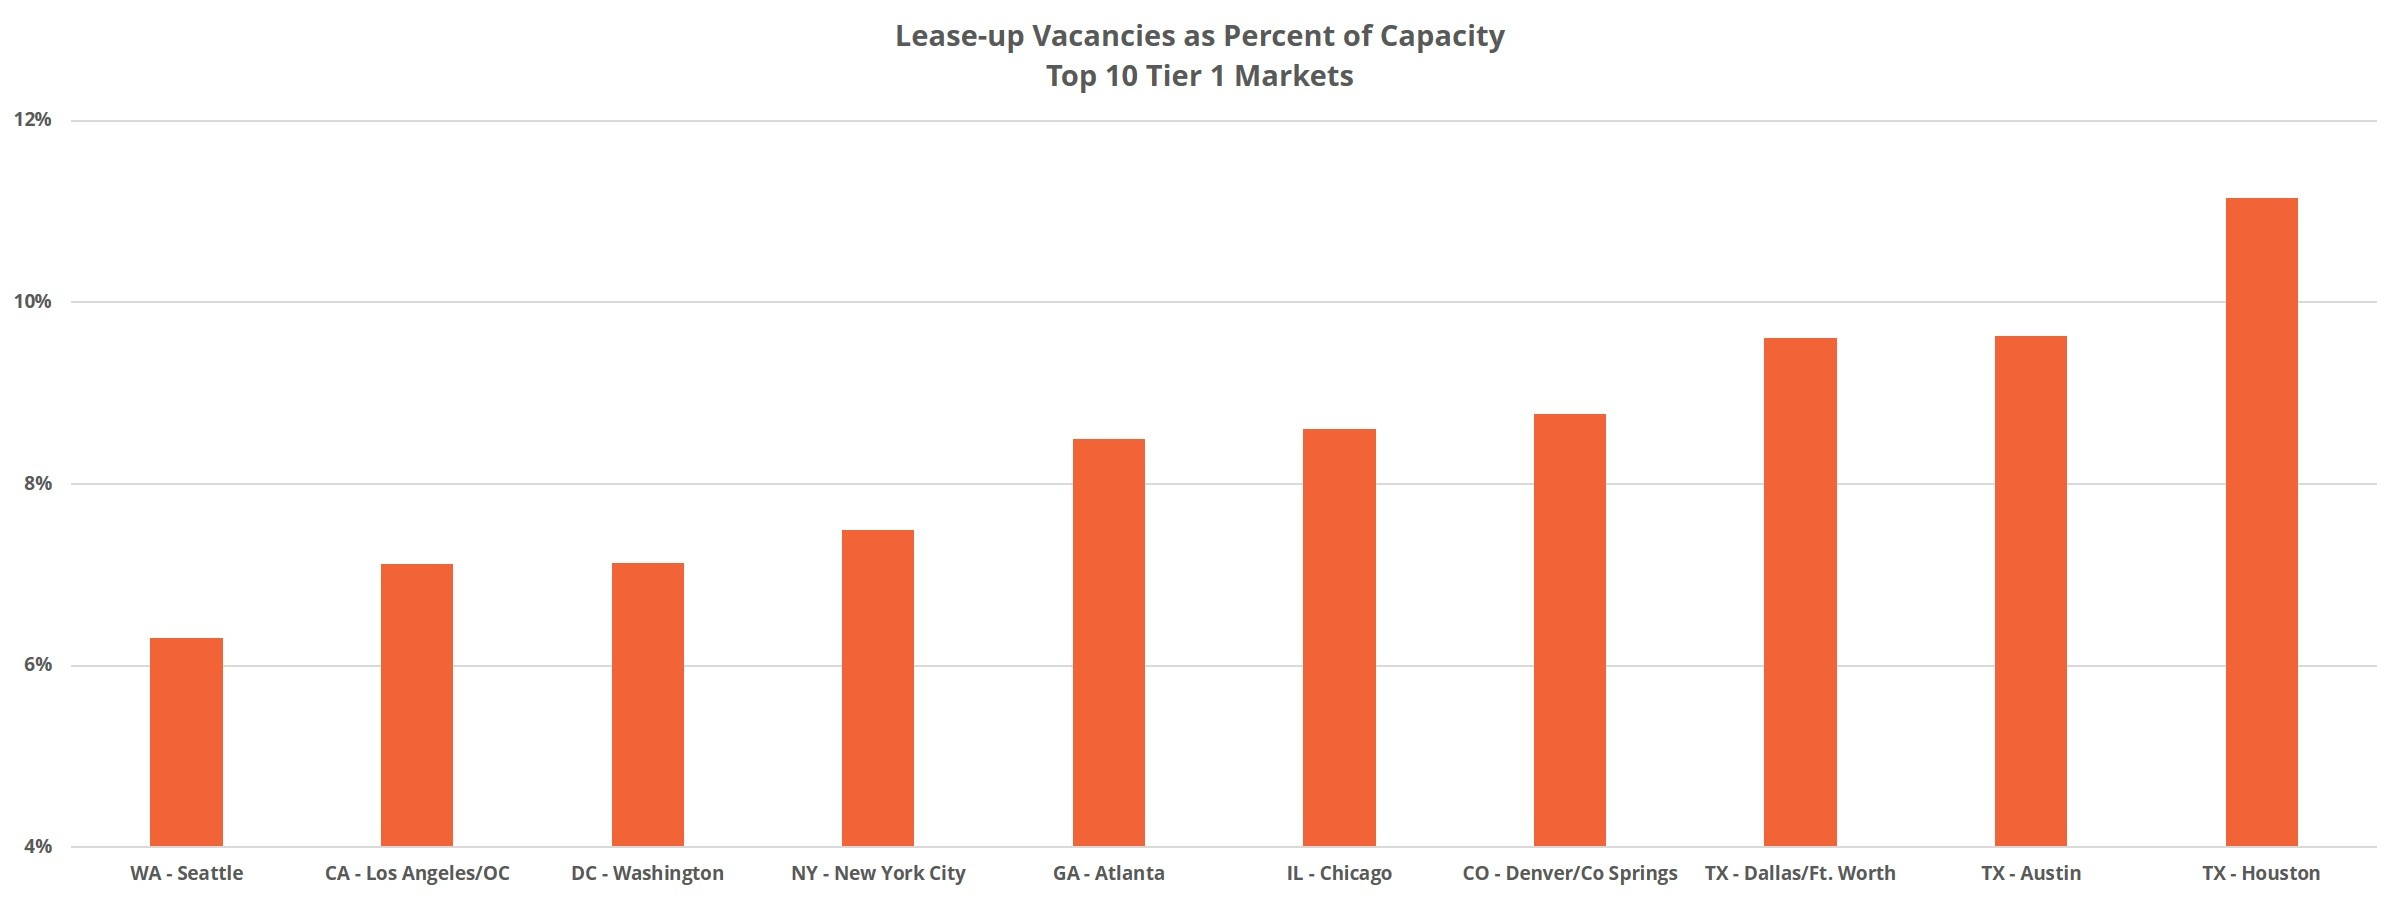 Top 10 Tier 1 Markets Lease-Up Vacancies as Percent of Capacity